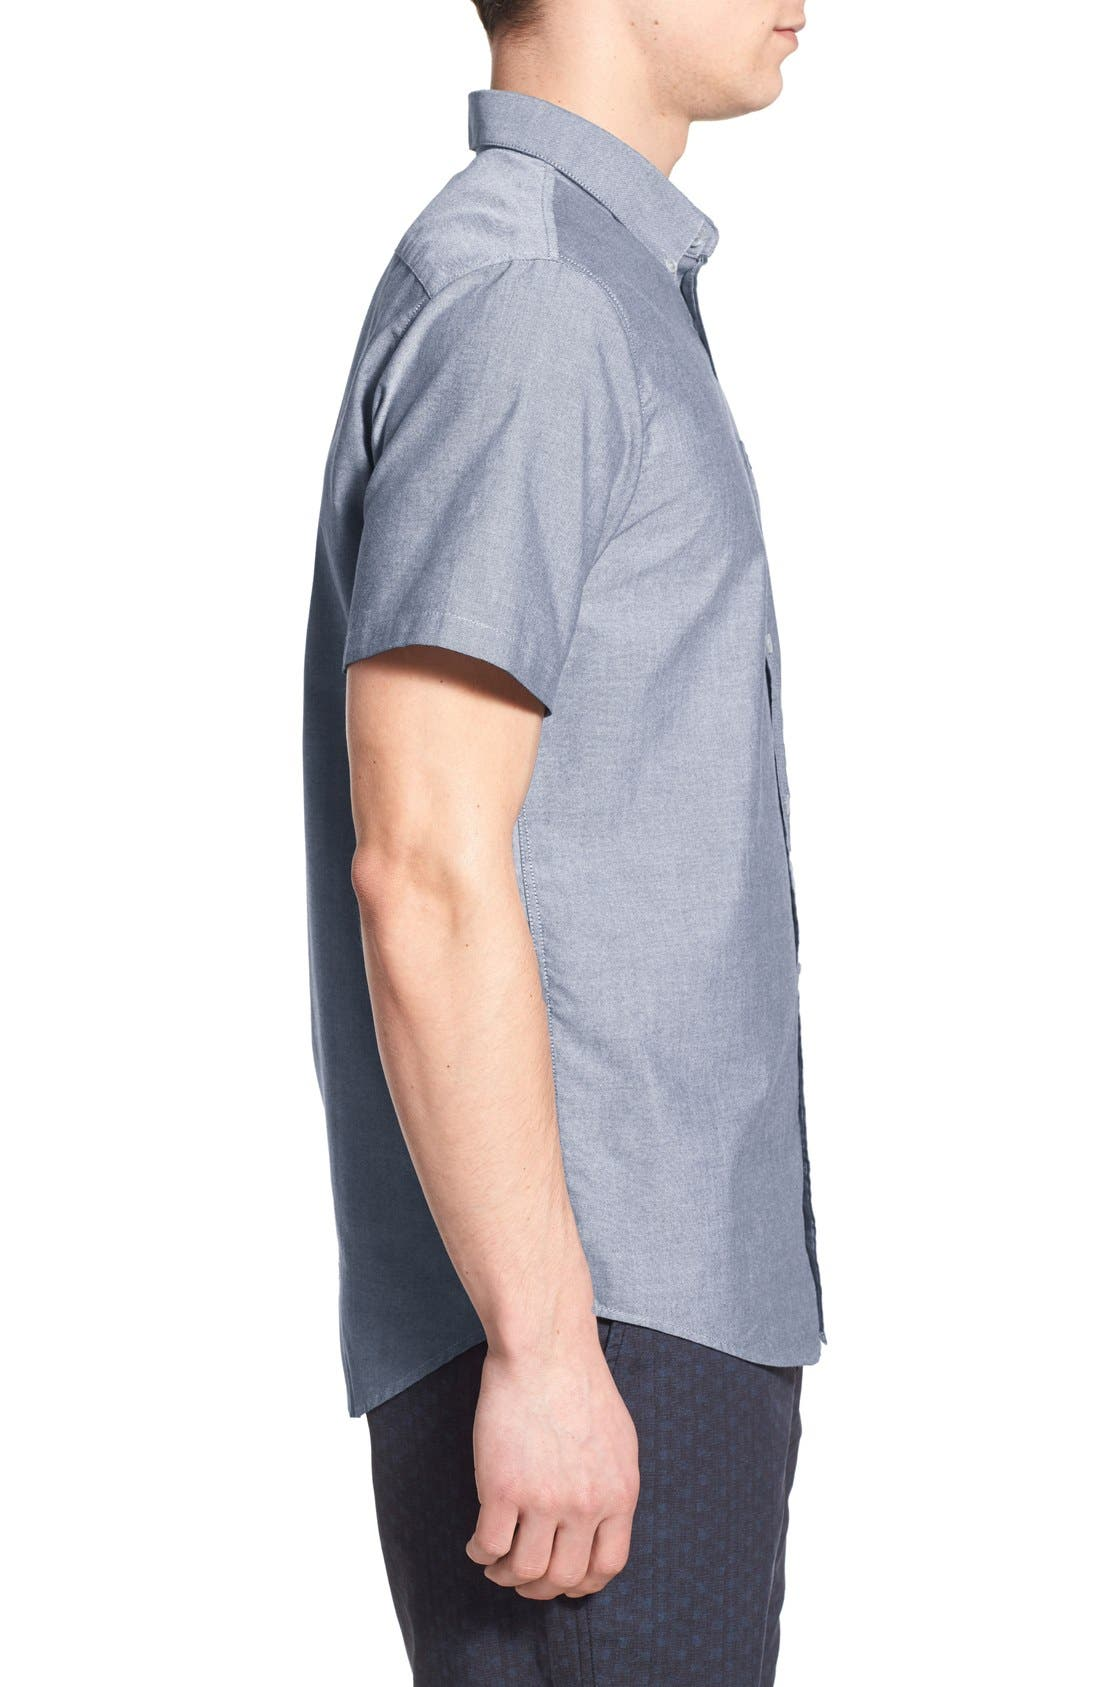 'That'll Do' Slim Fit Short Sleeve Oxford Shirt,                             Alternate thumbnail 4, color,                             DISTANT BLUE